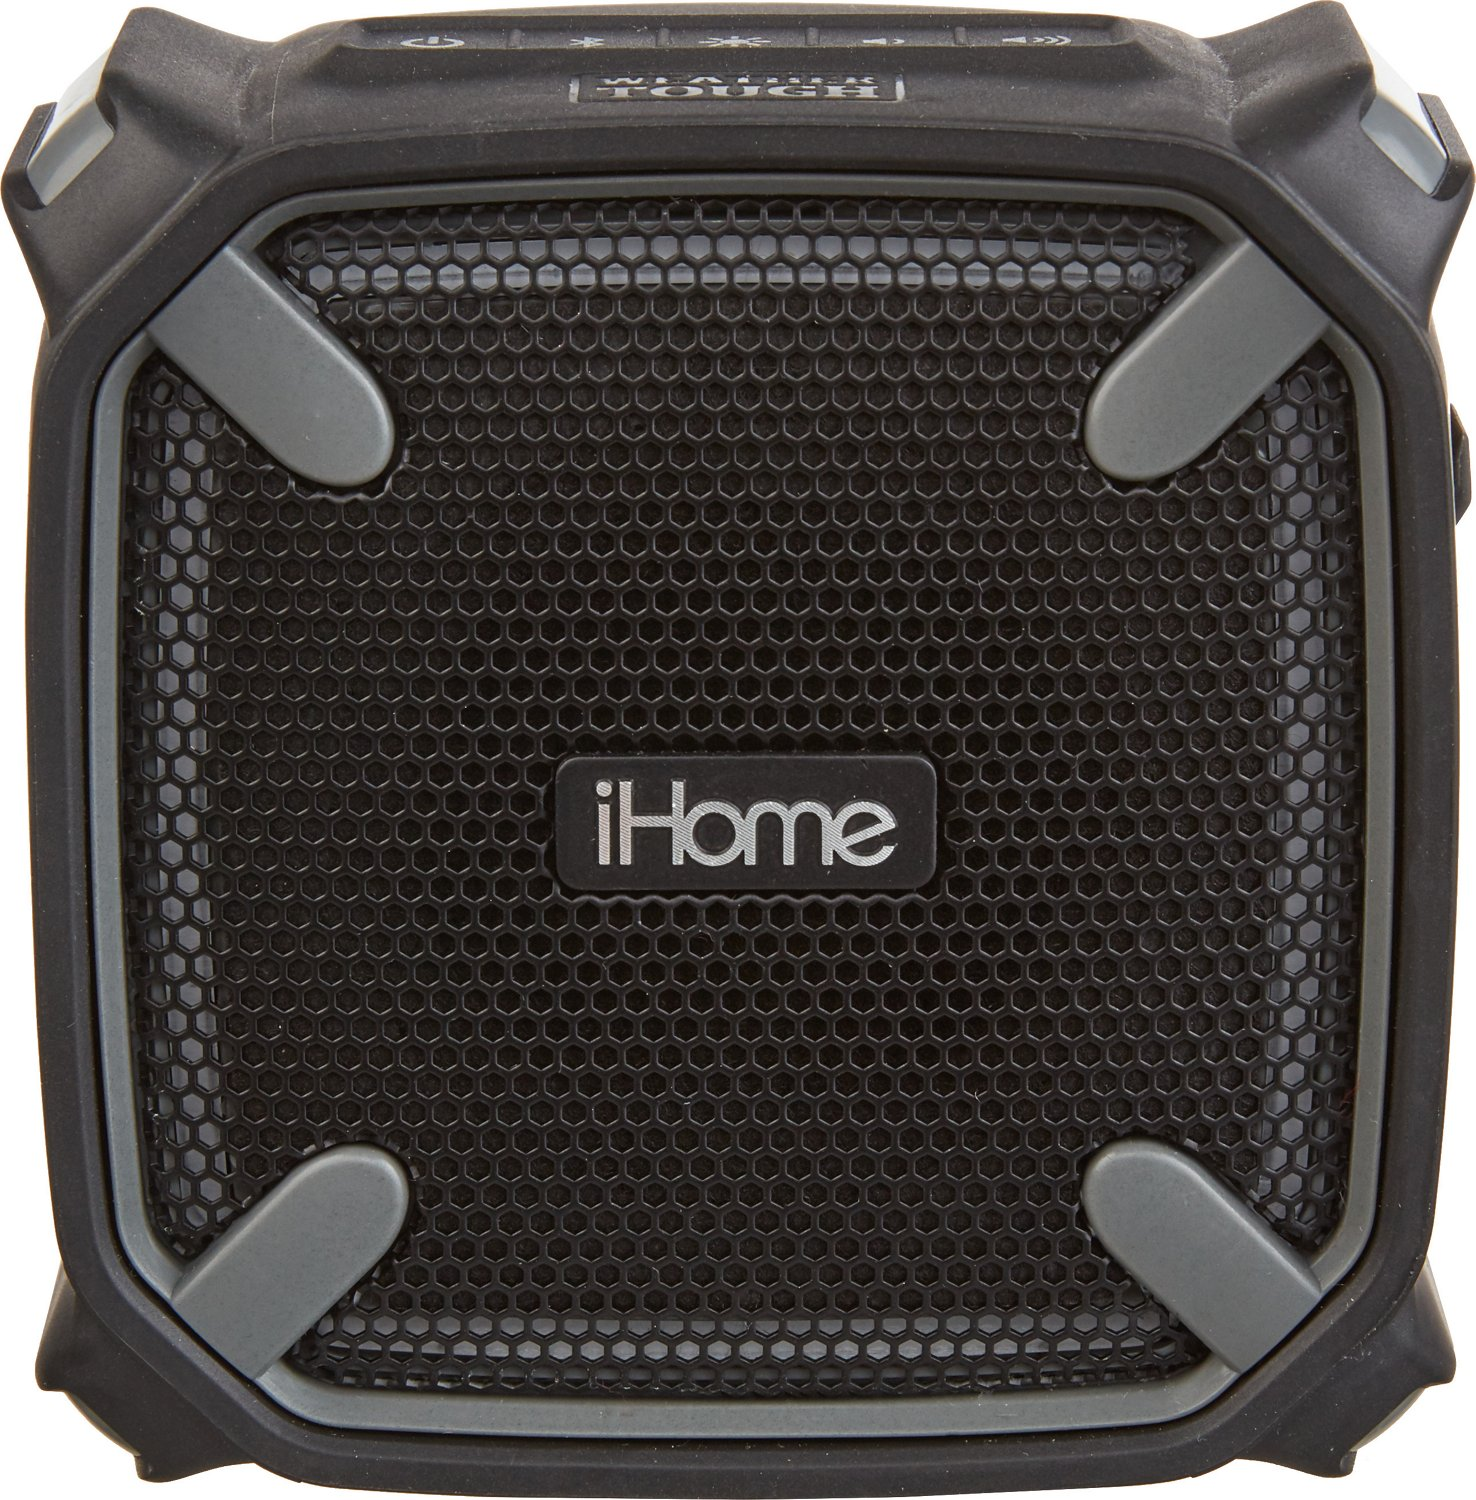 Ihome Bluetooth Portable Speaker: IHome Portable Waterproof Shockproof Bluetooth Speaker With Accent Light